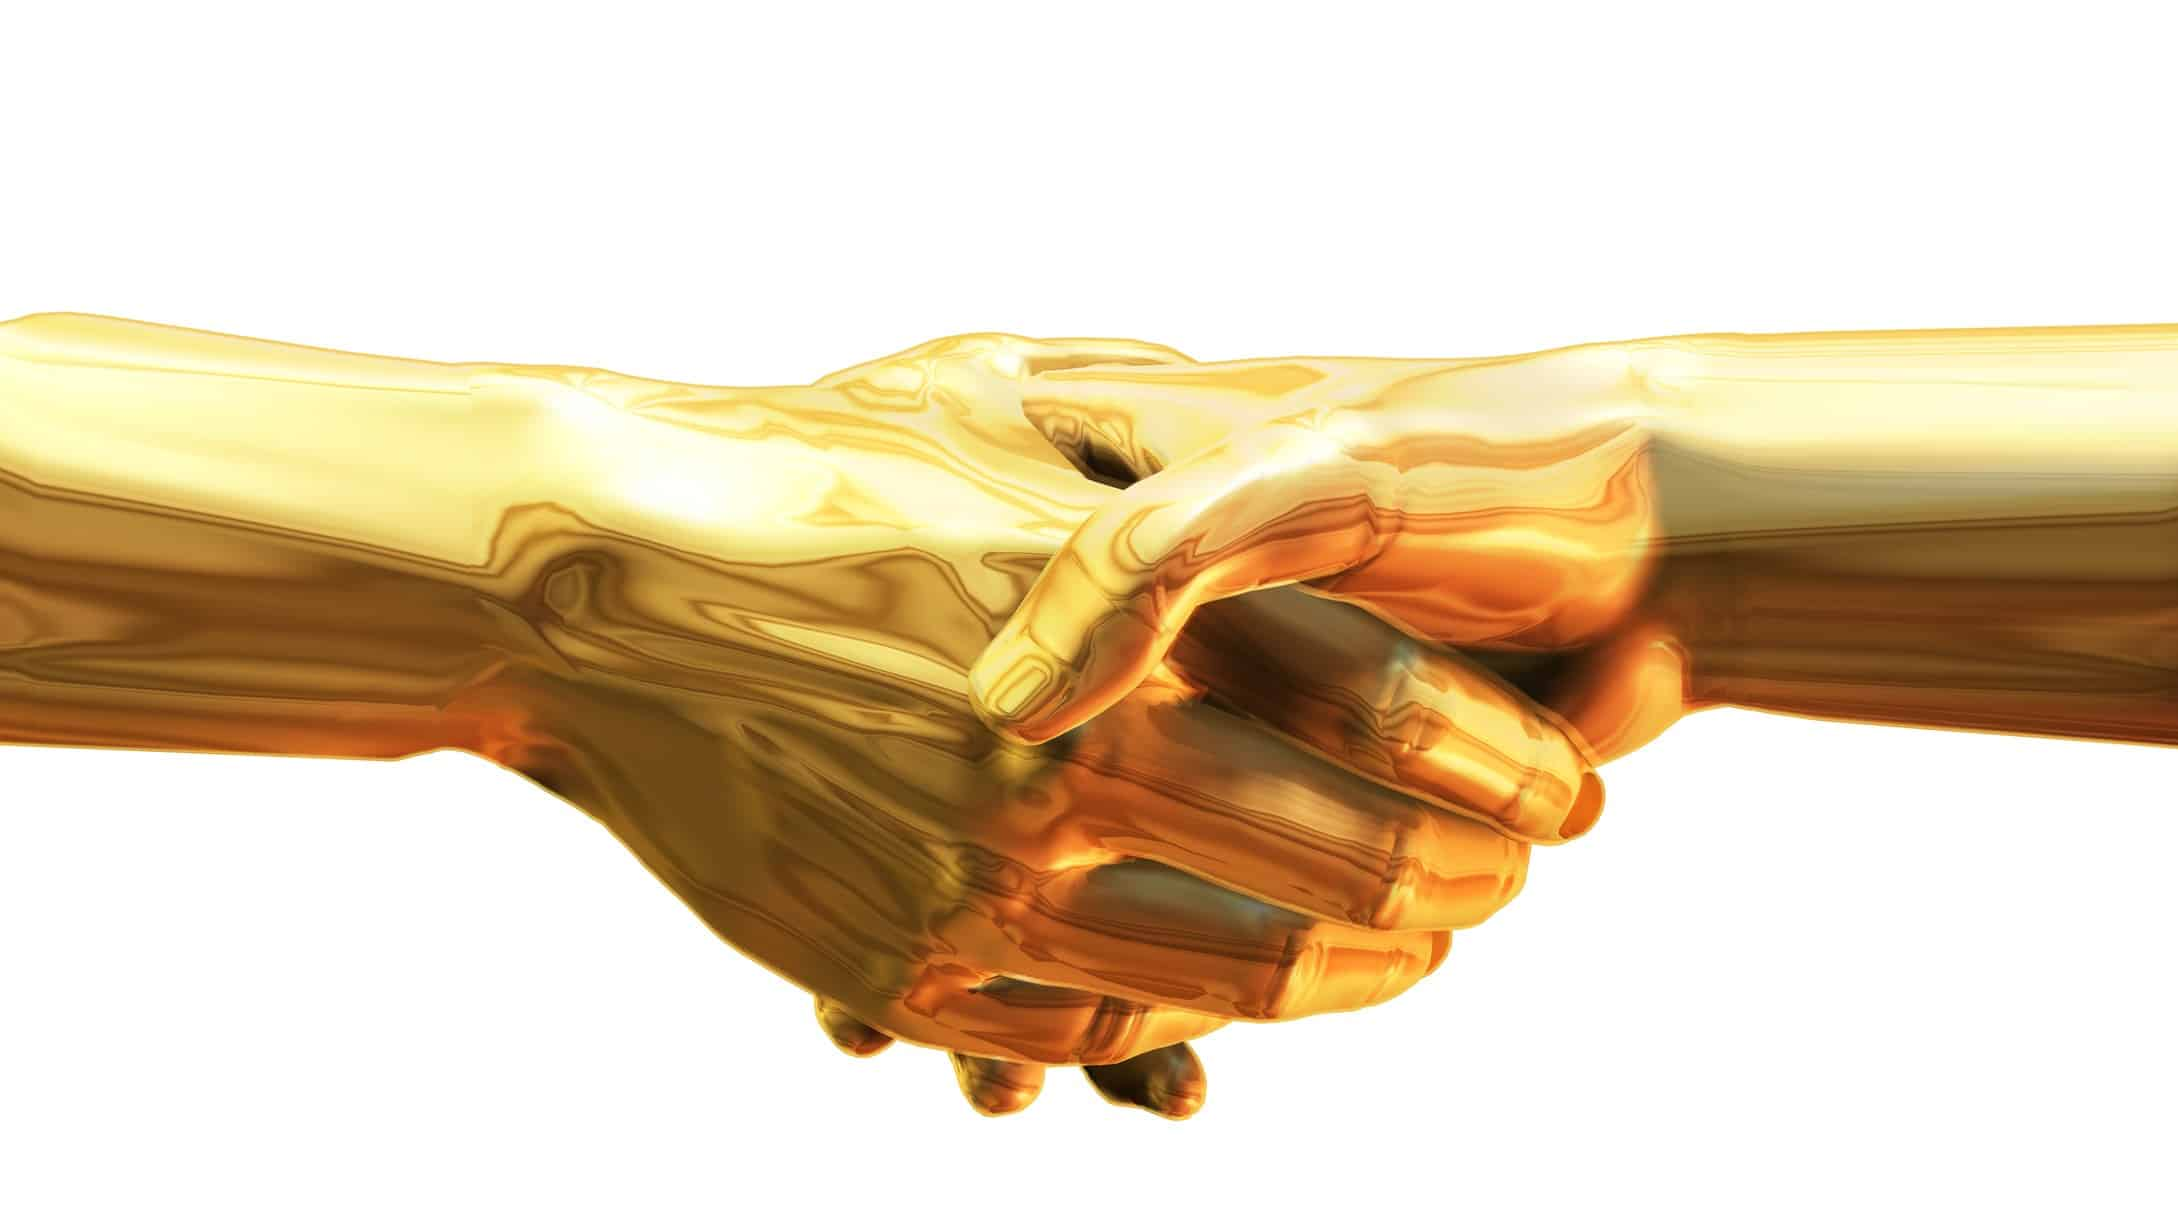 asx gold share merger represented by hand shake of two golden hands